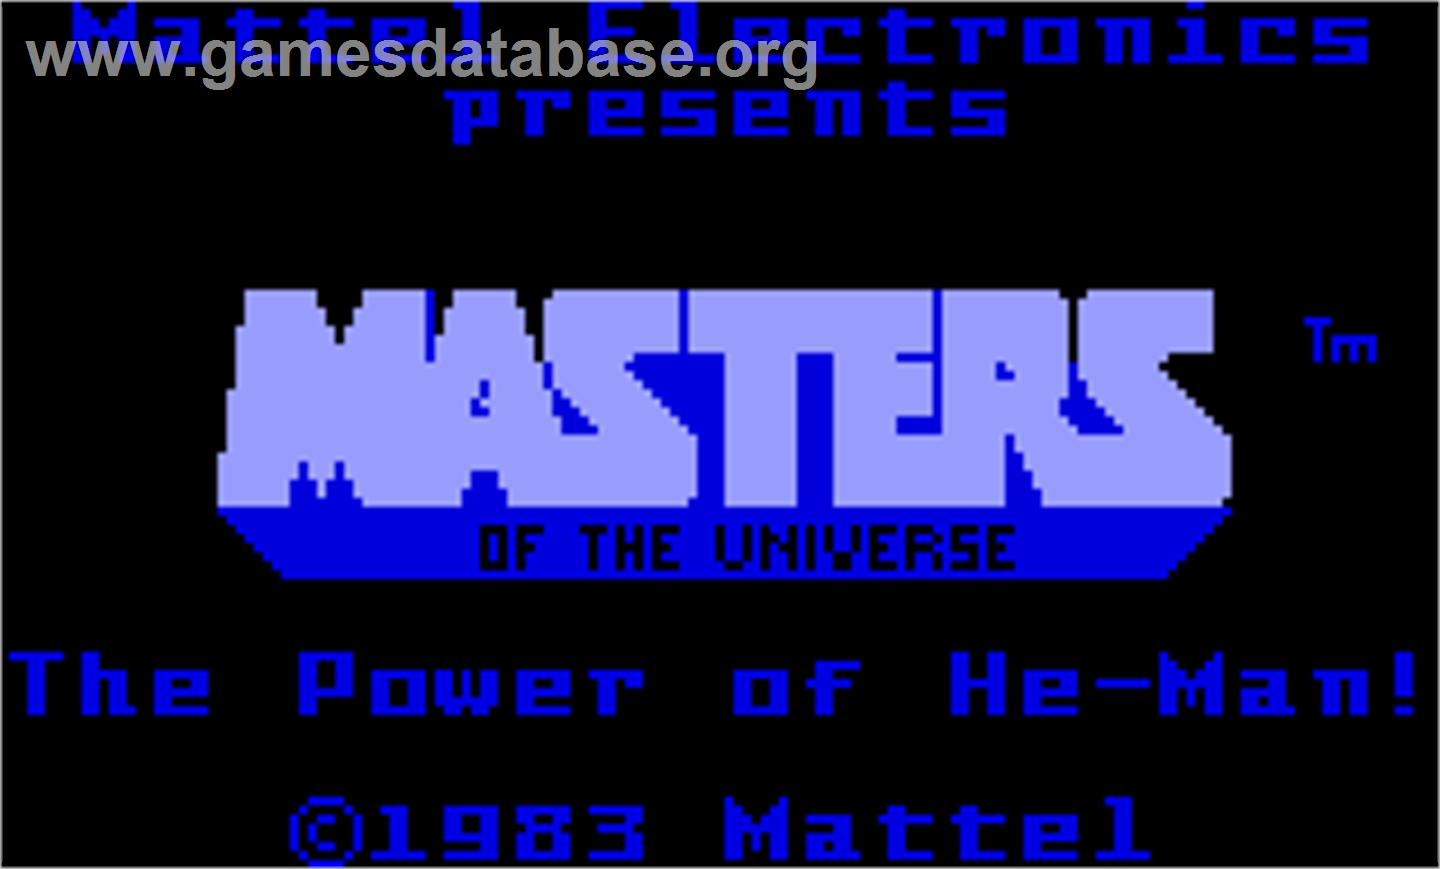 Masters of the Universe: The Power of He-Man - Mattel Intellivision - Artwork - Title Screen